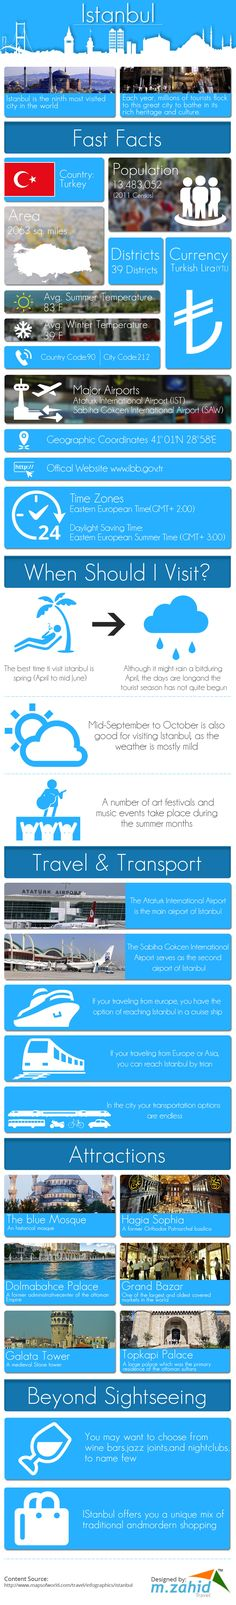 Most Visited City Istanbul, Turkey – #Istanbul #Travel Infographic